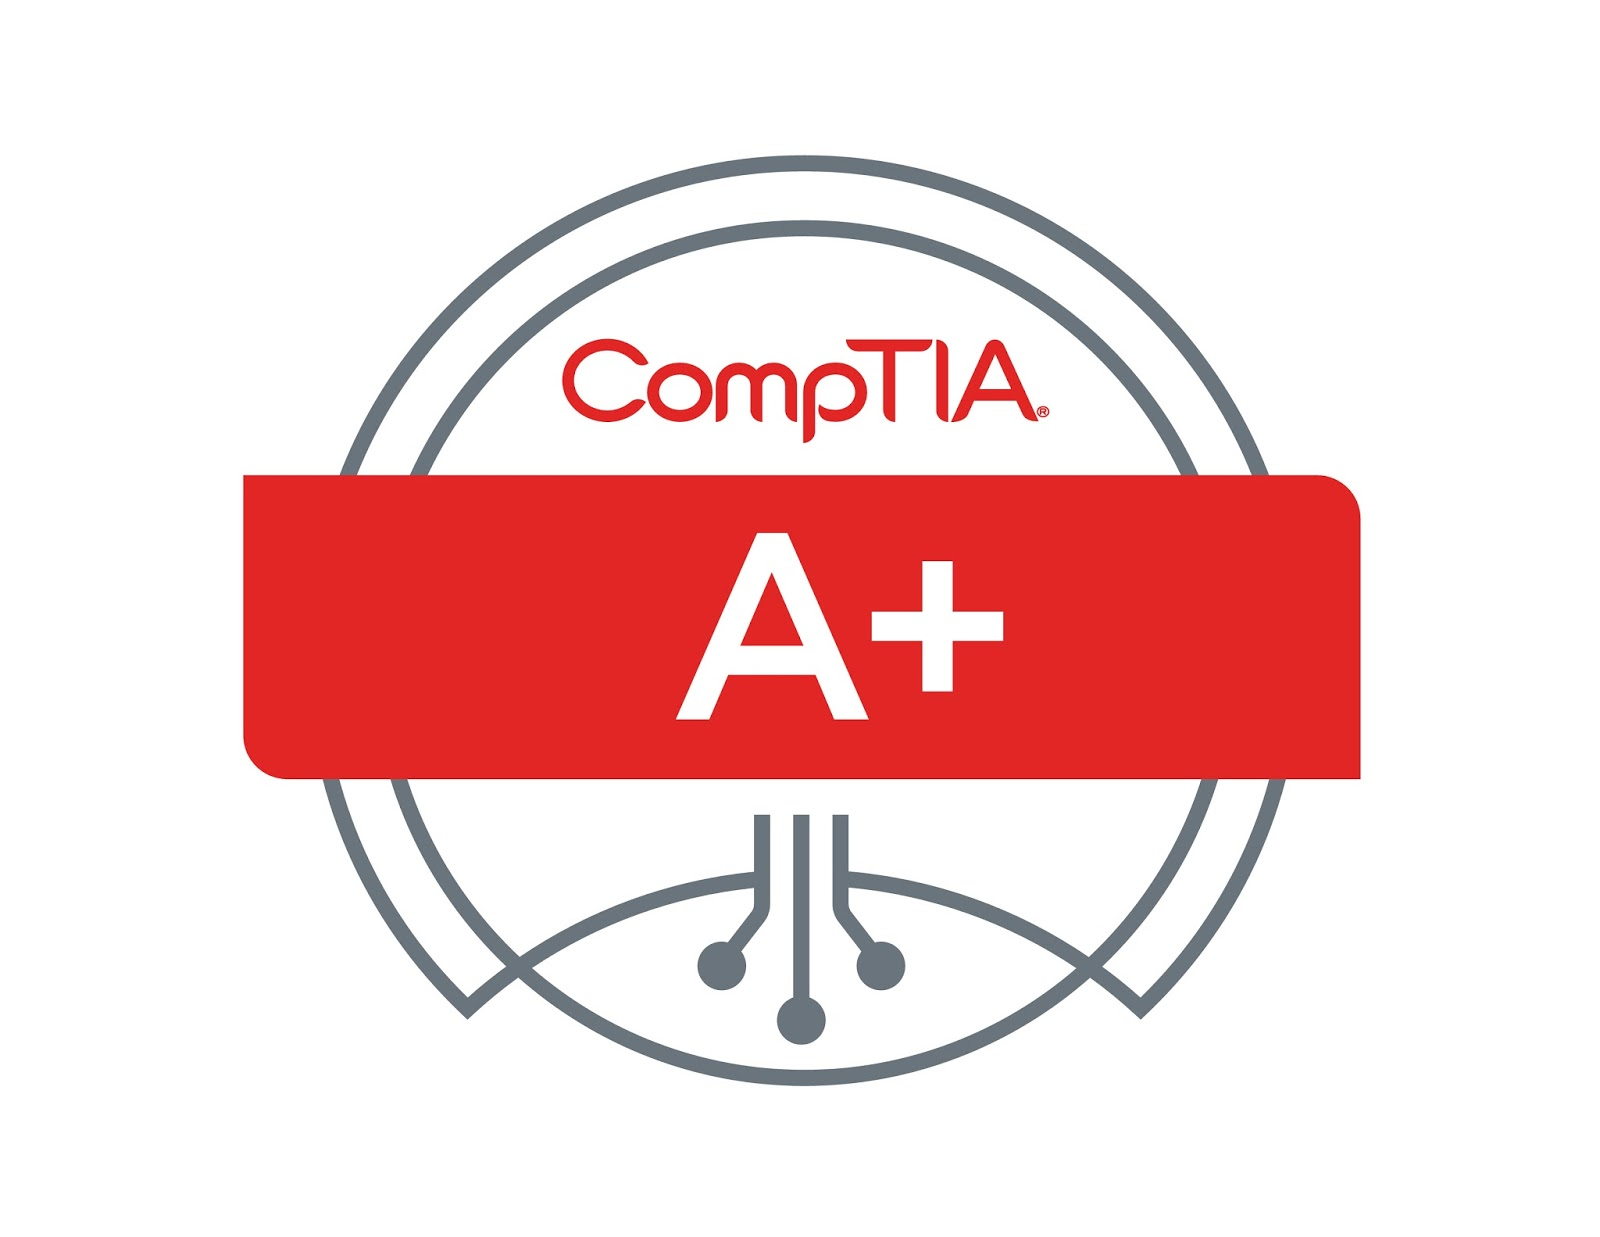 Oracle database 11g sql fundamentals i training dha home tutors comptia a certification in karachi comptia a certification professional training in karachi comptia a certification tutors in karachi 1betcityfo Image collections